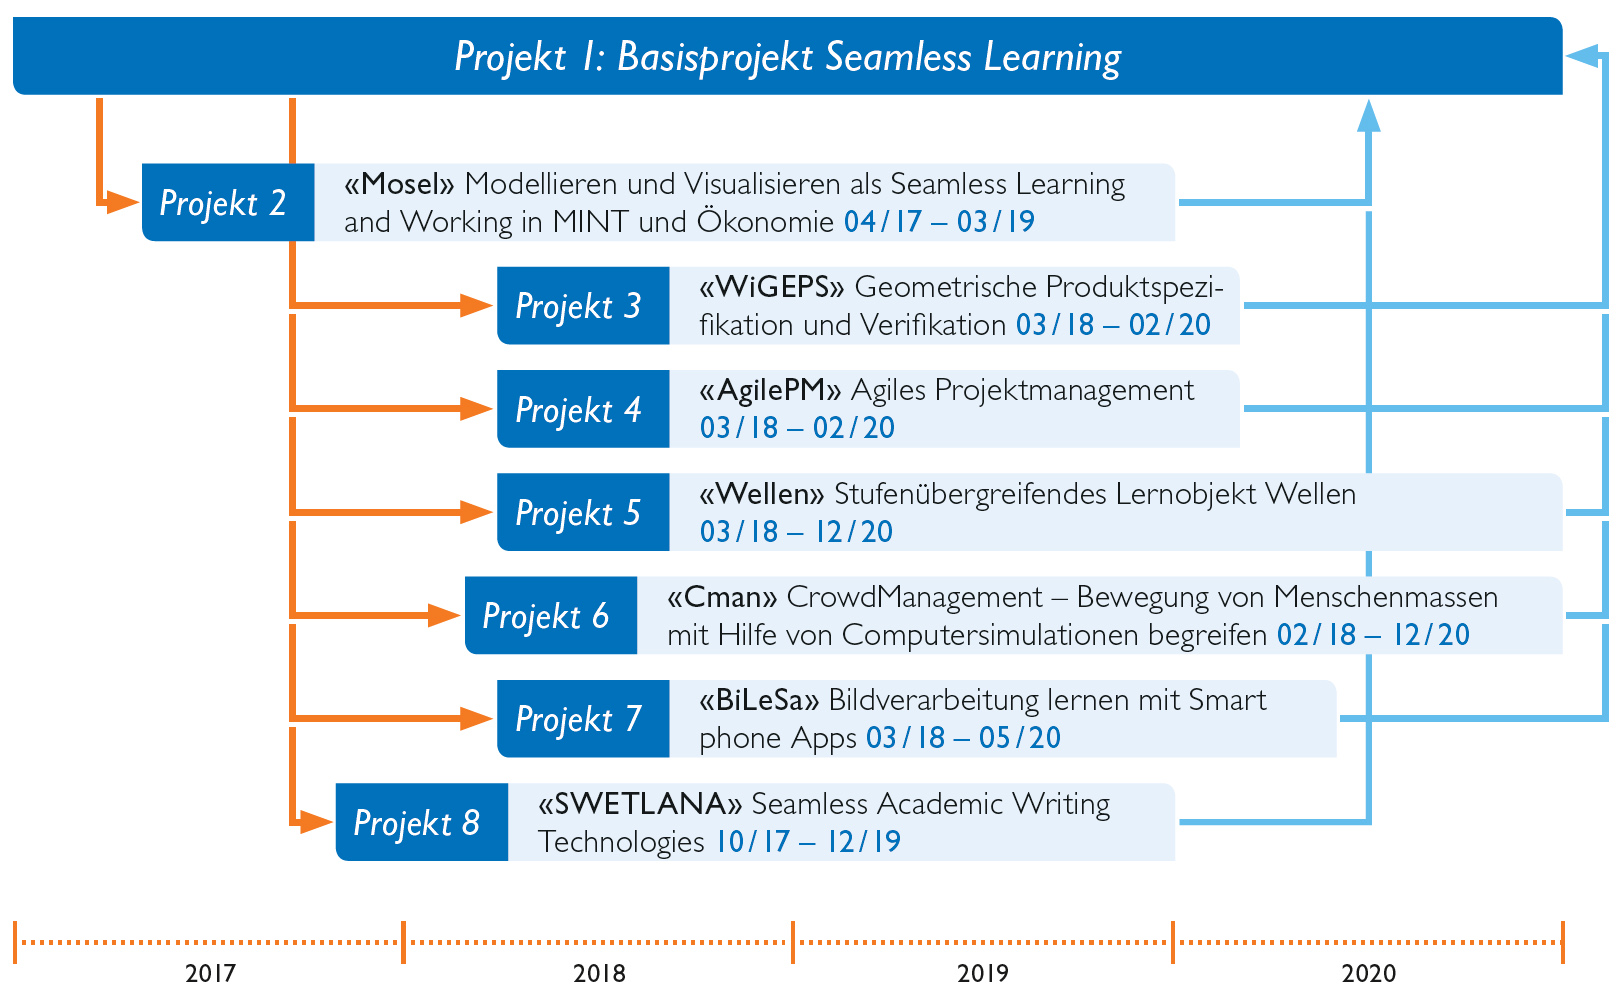 seamless-learning-projektuebersicht-de